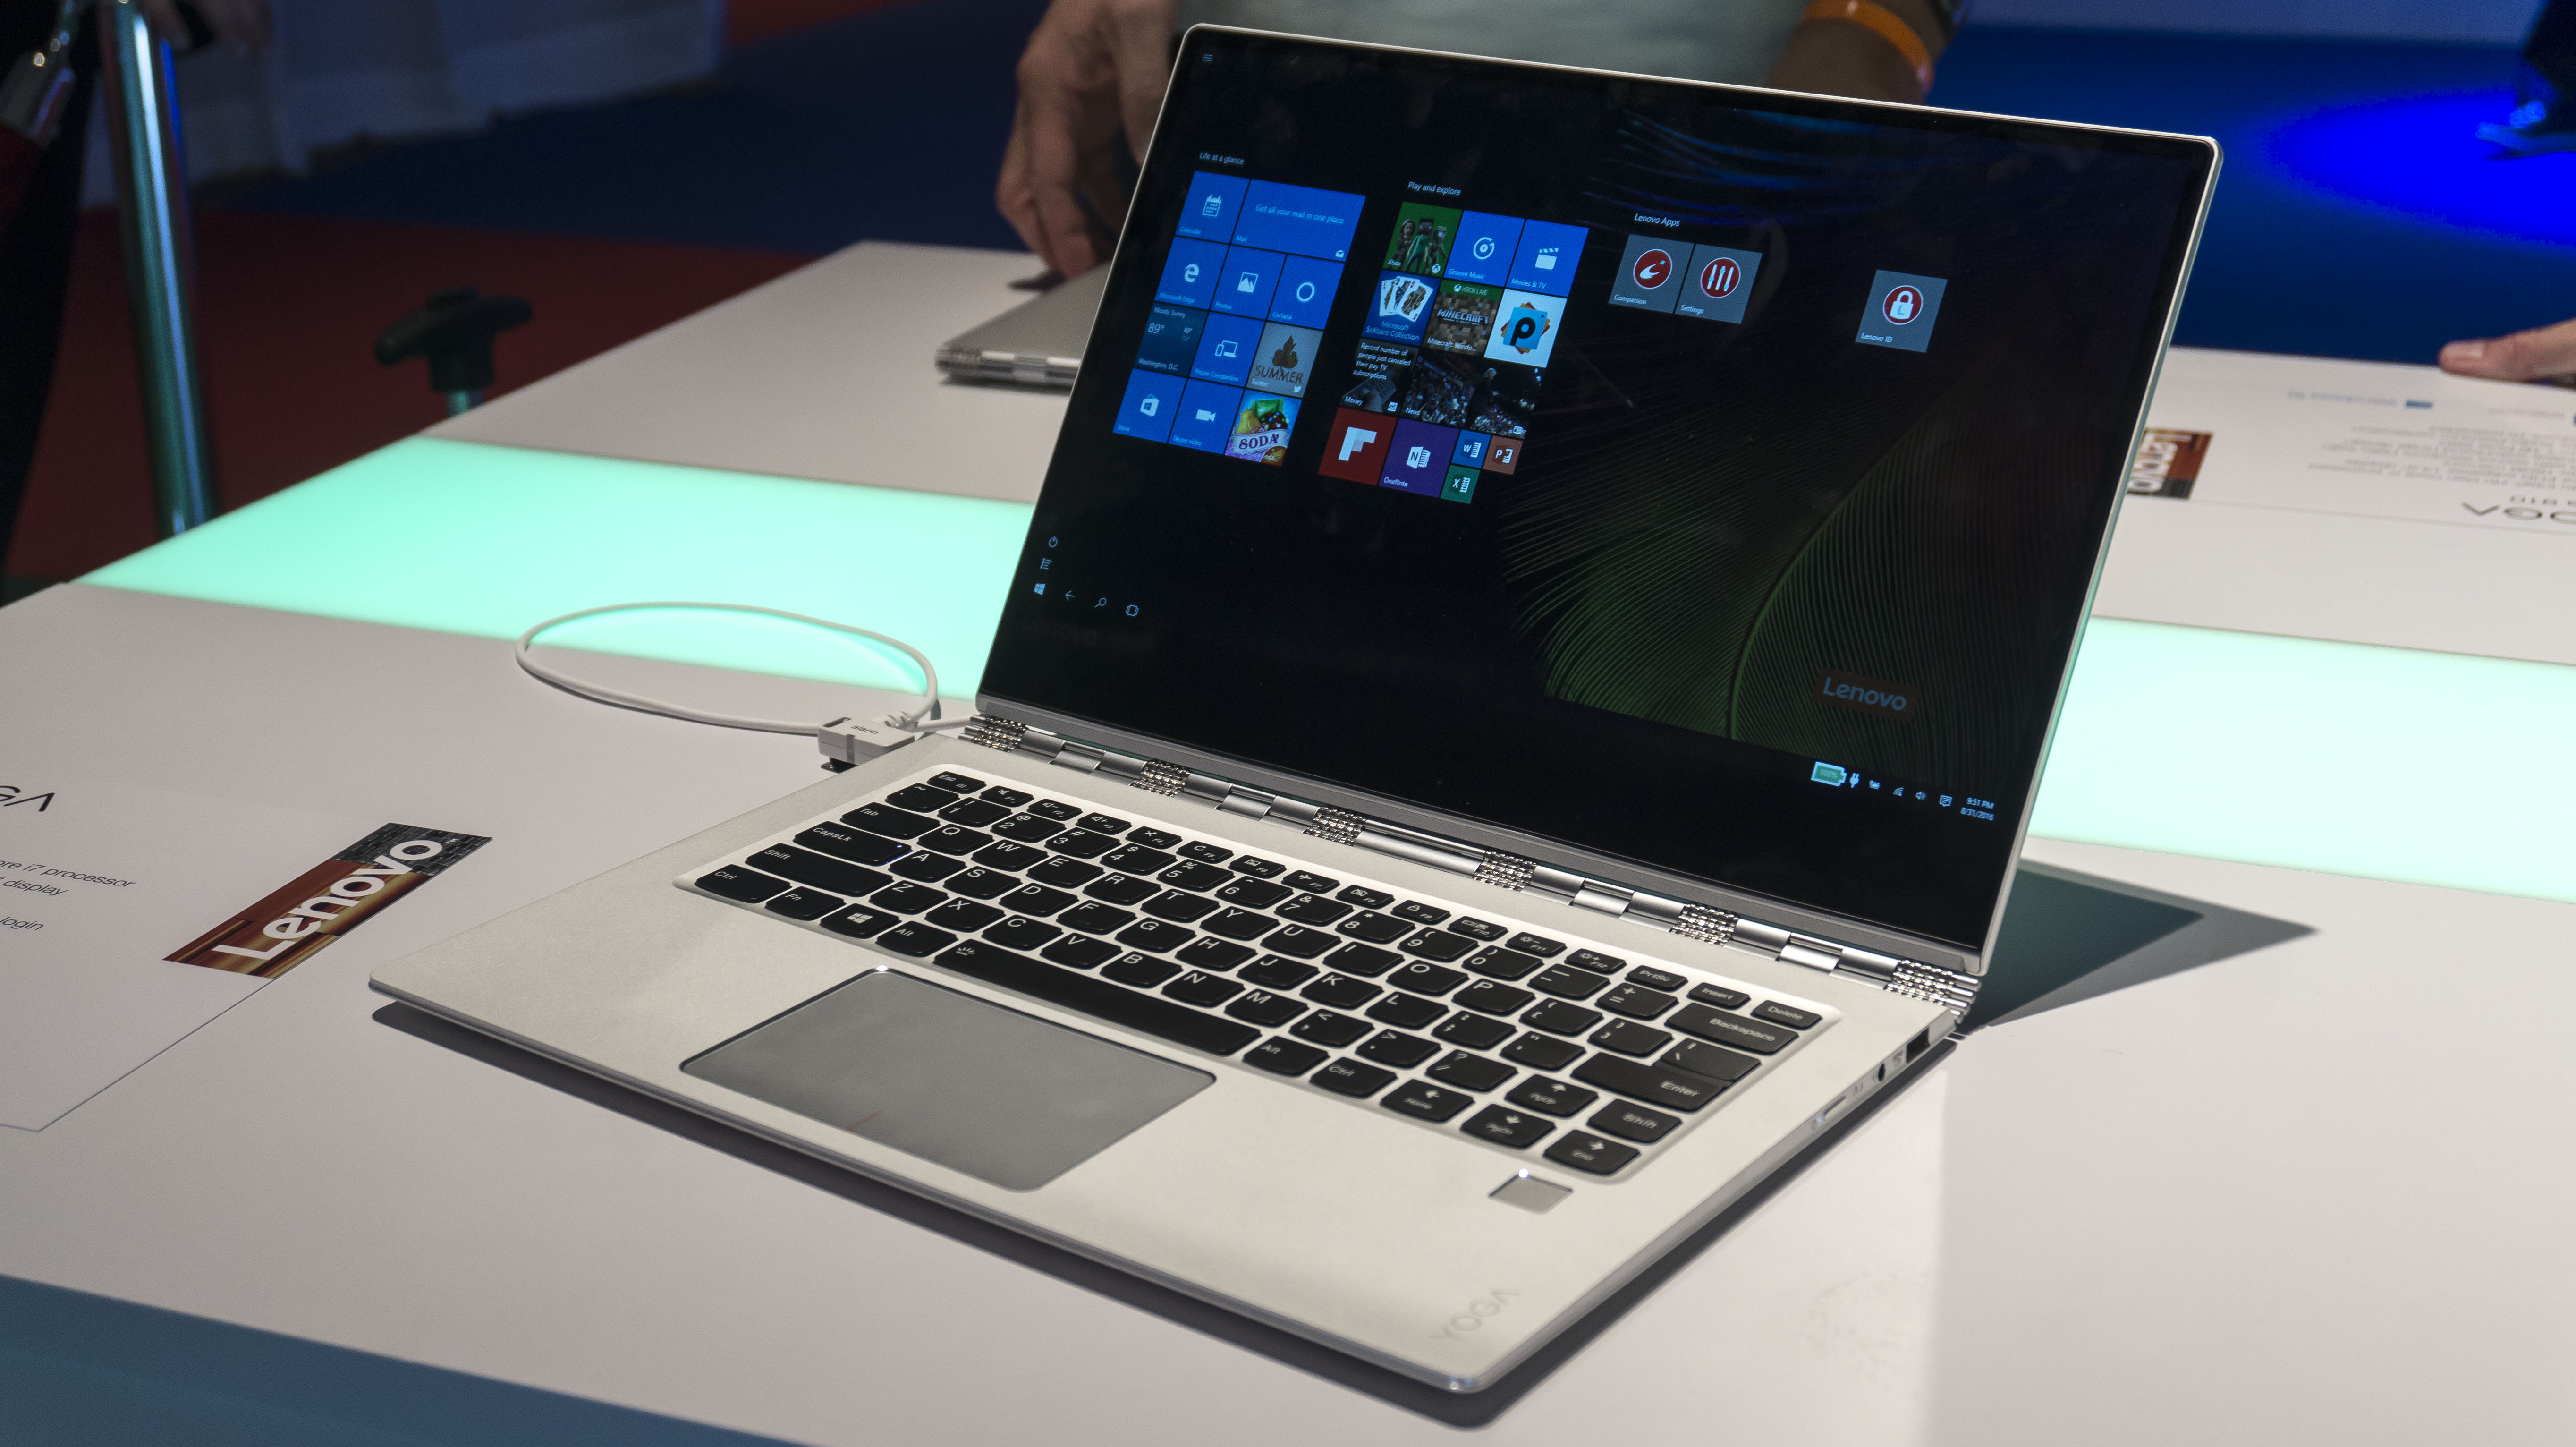 Lenovo Yoga 910 Review Hands On With The Super Slim